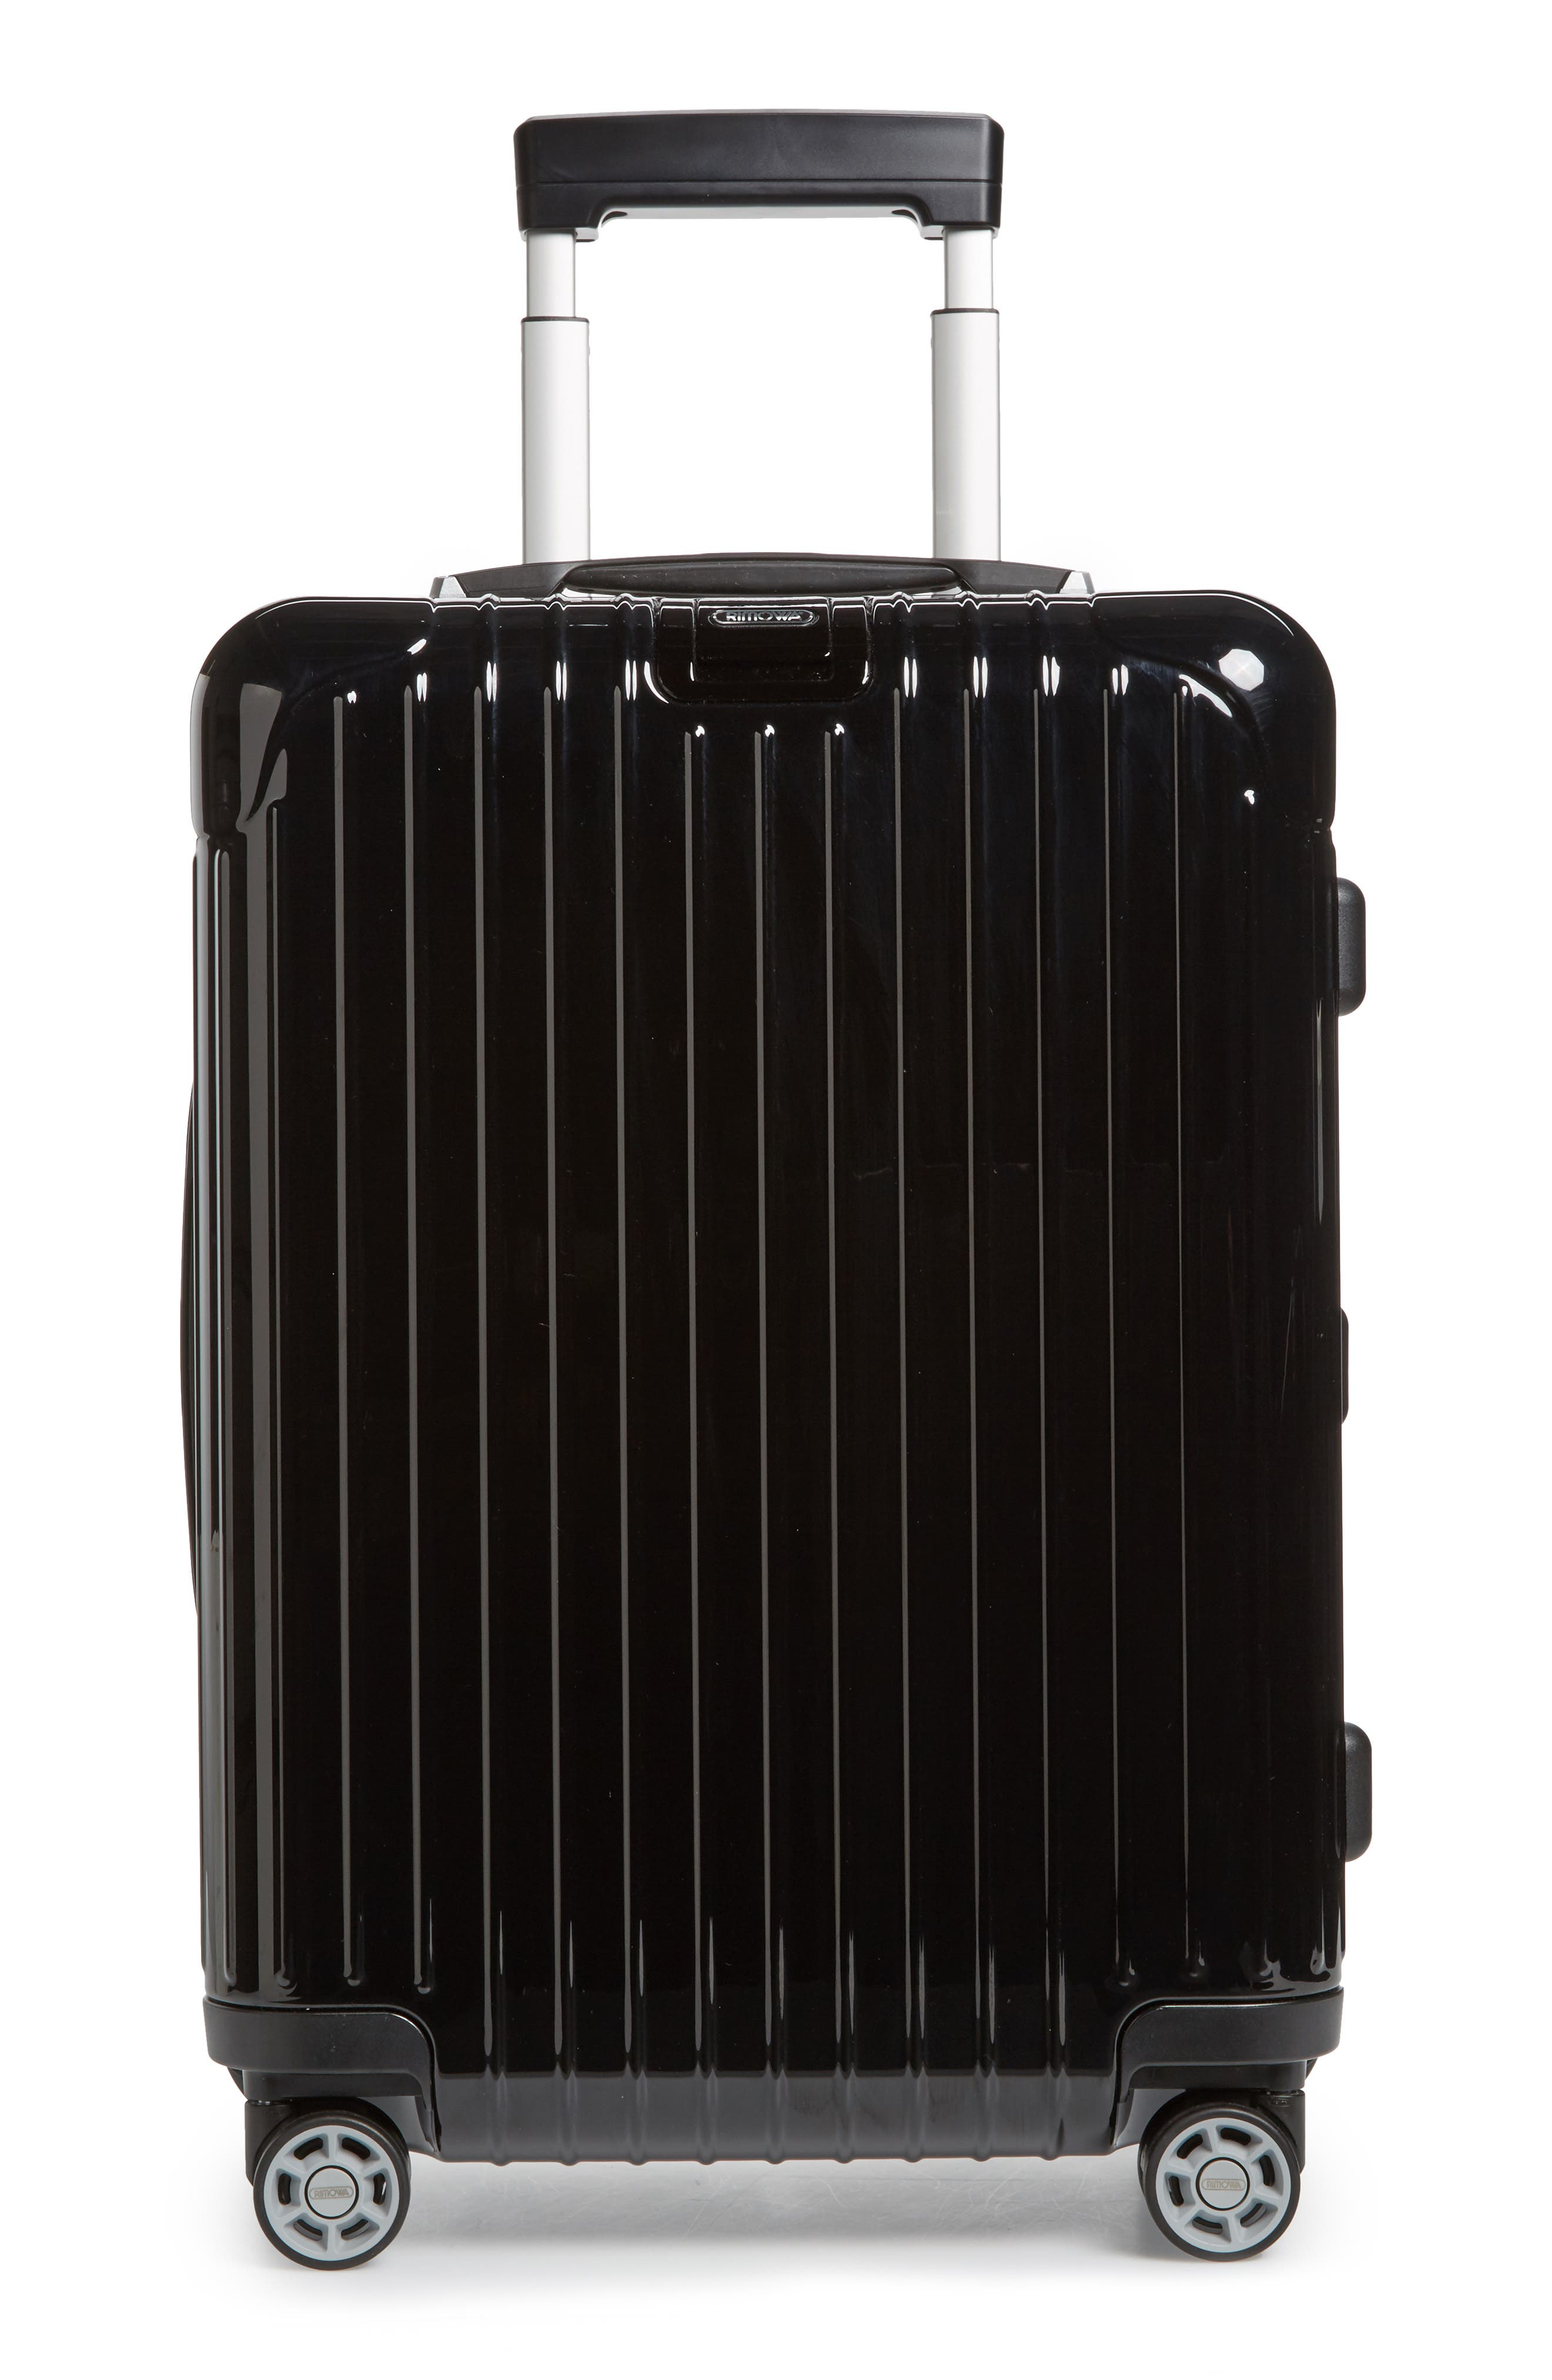 RIMOWA Salsa Deluxe 22 Inch Cabin Multiwheel<sup>®</sup> Carry-On